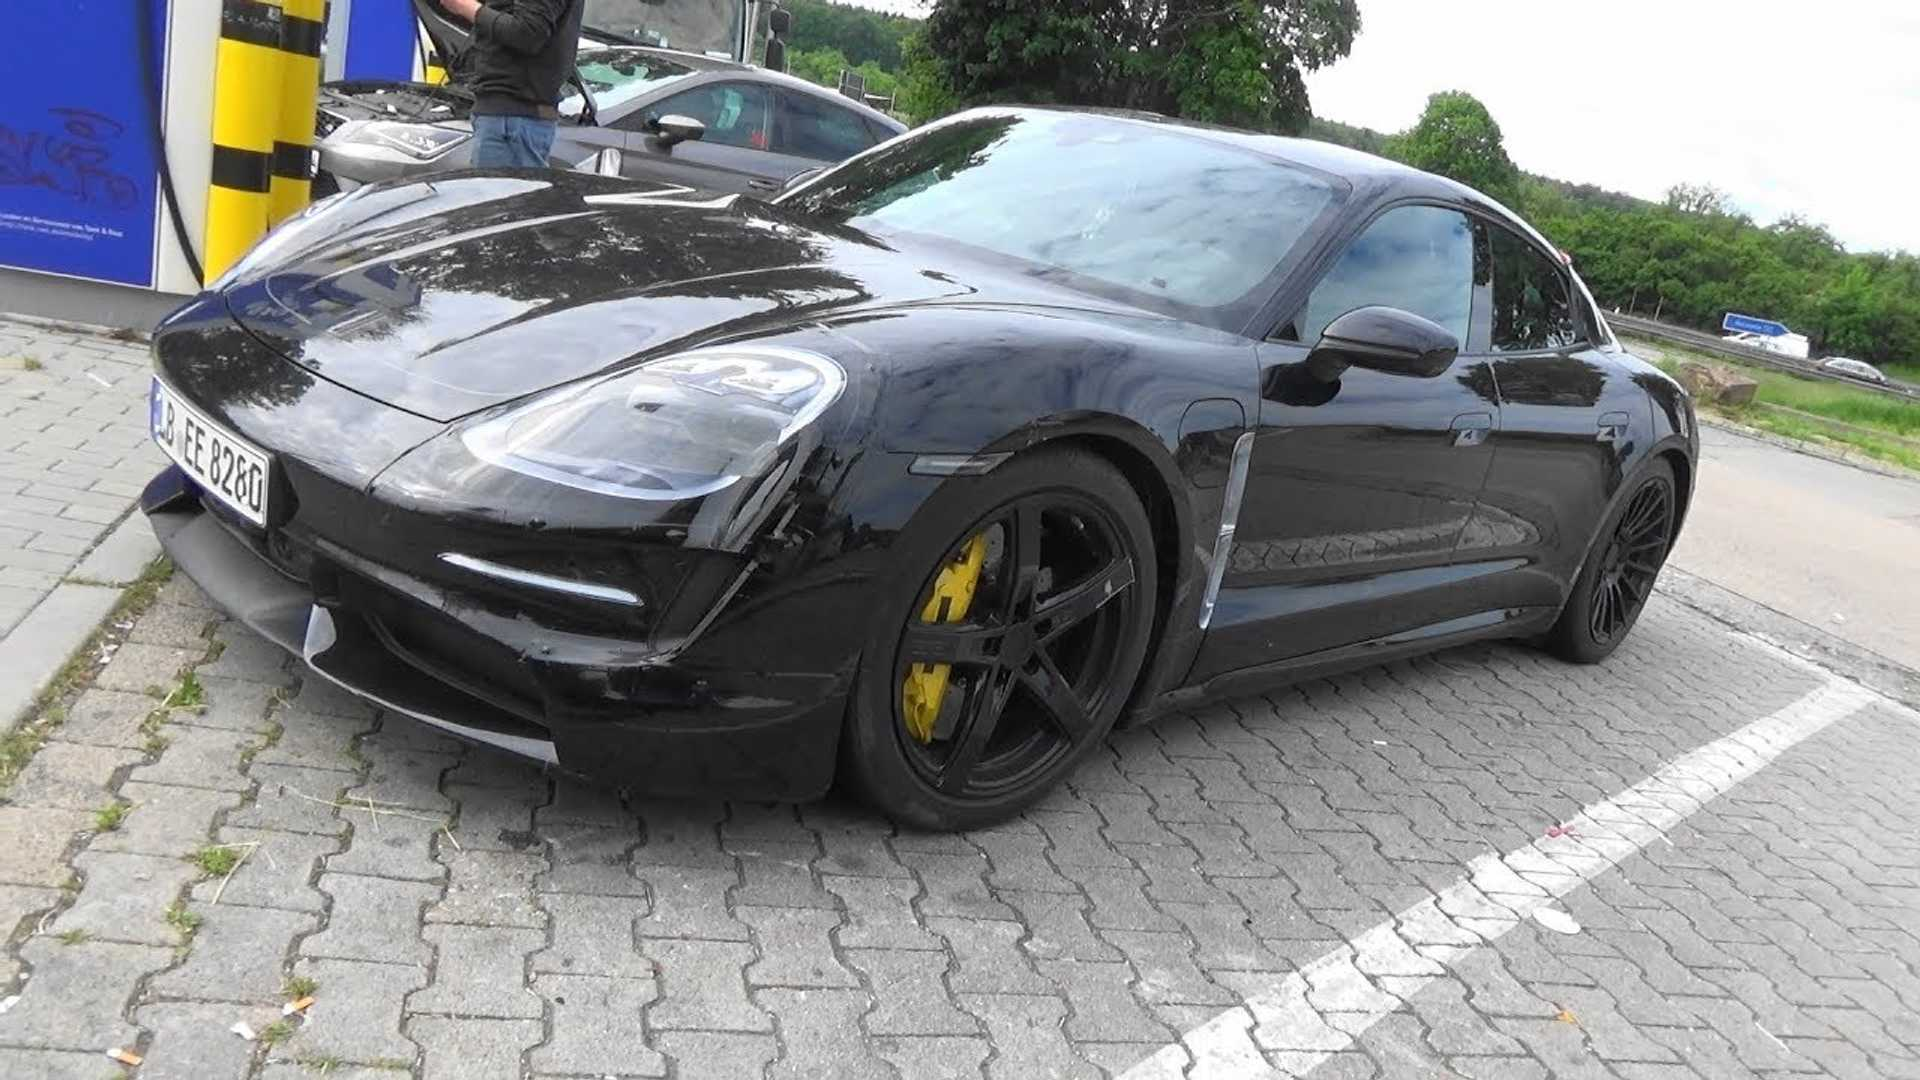 2020 Porsche Taycan Spied In Detail With Barely Any Camo